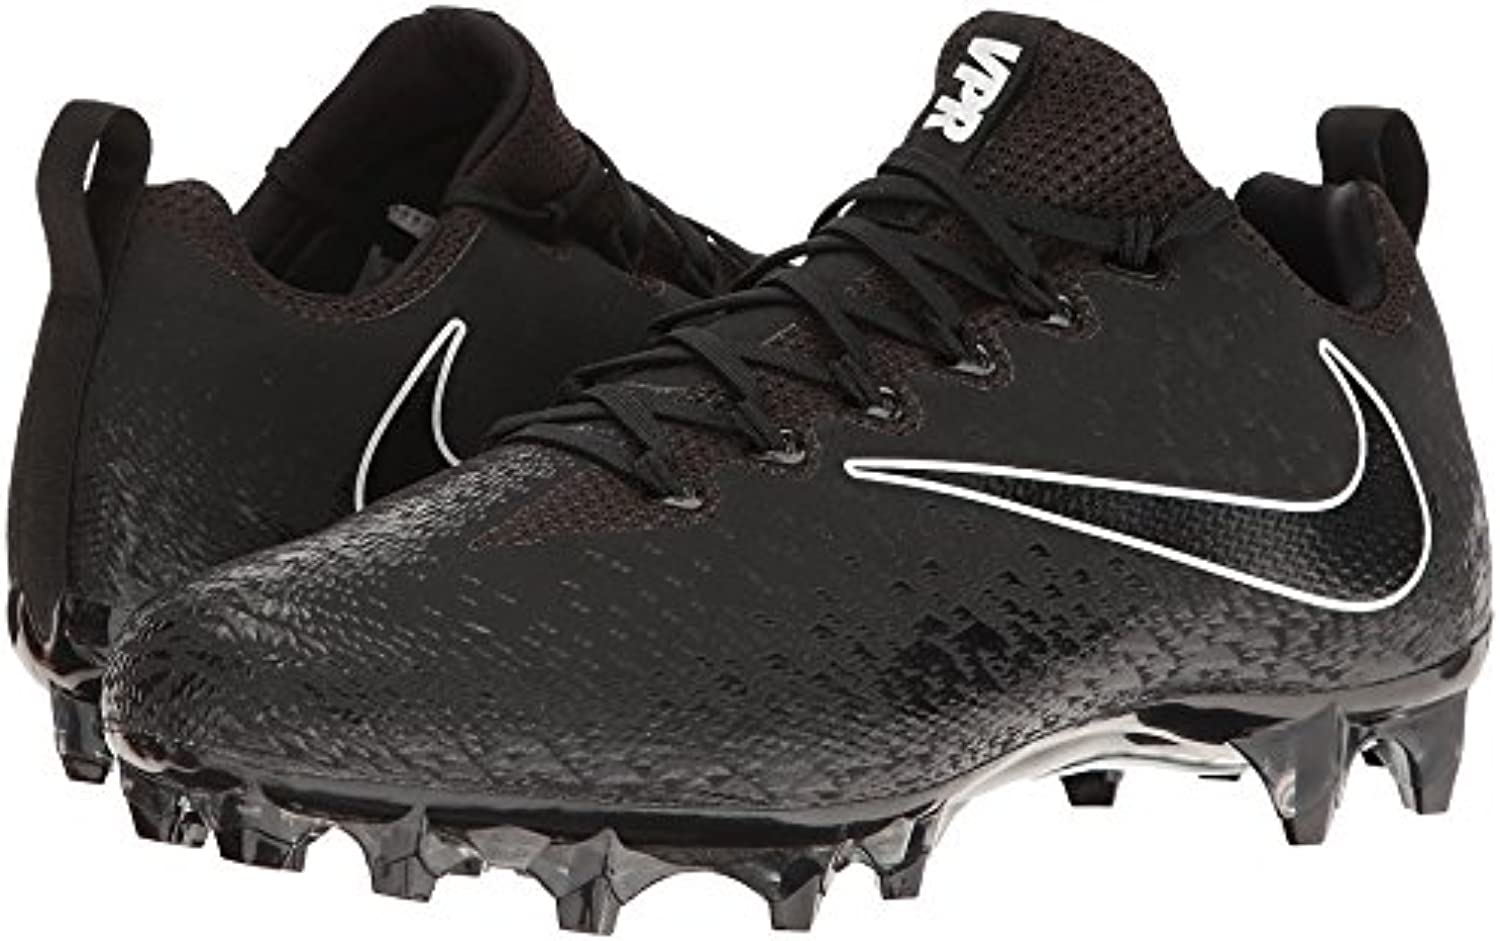 Nike Vapor Untouchable Pro Black Black Metallic Silver White Men's Cleated shoes